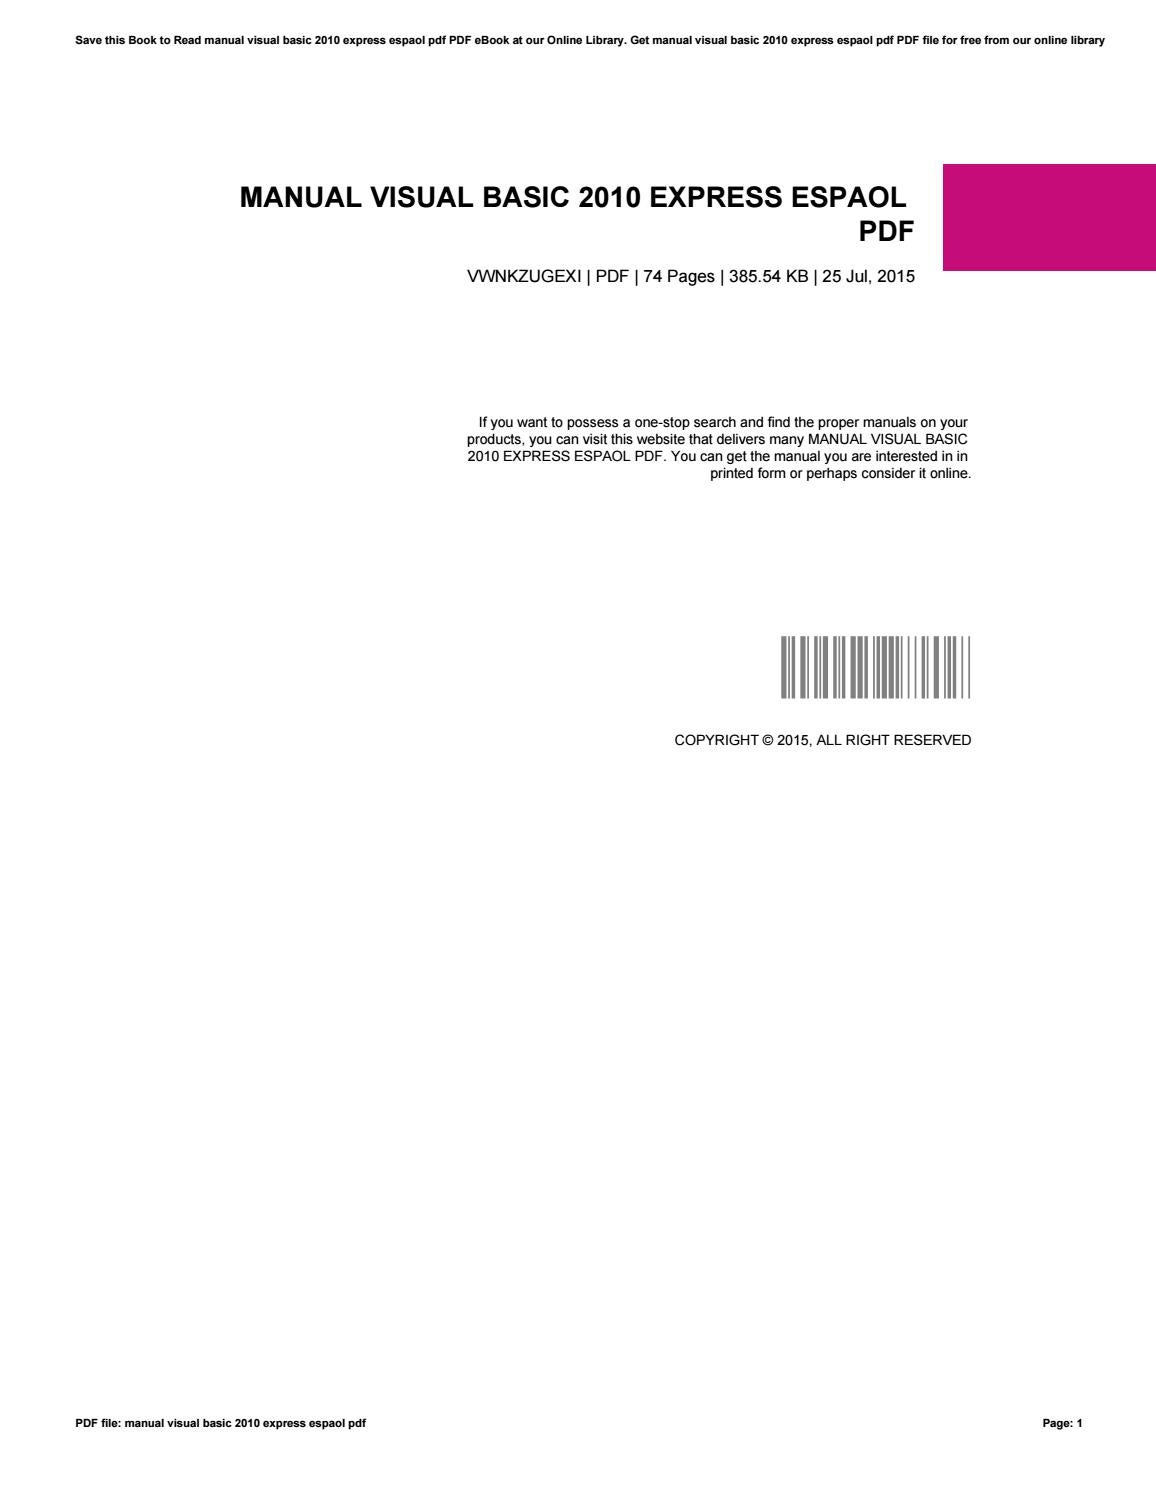 Manual visual basic 2010 express espaol pdf by